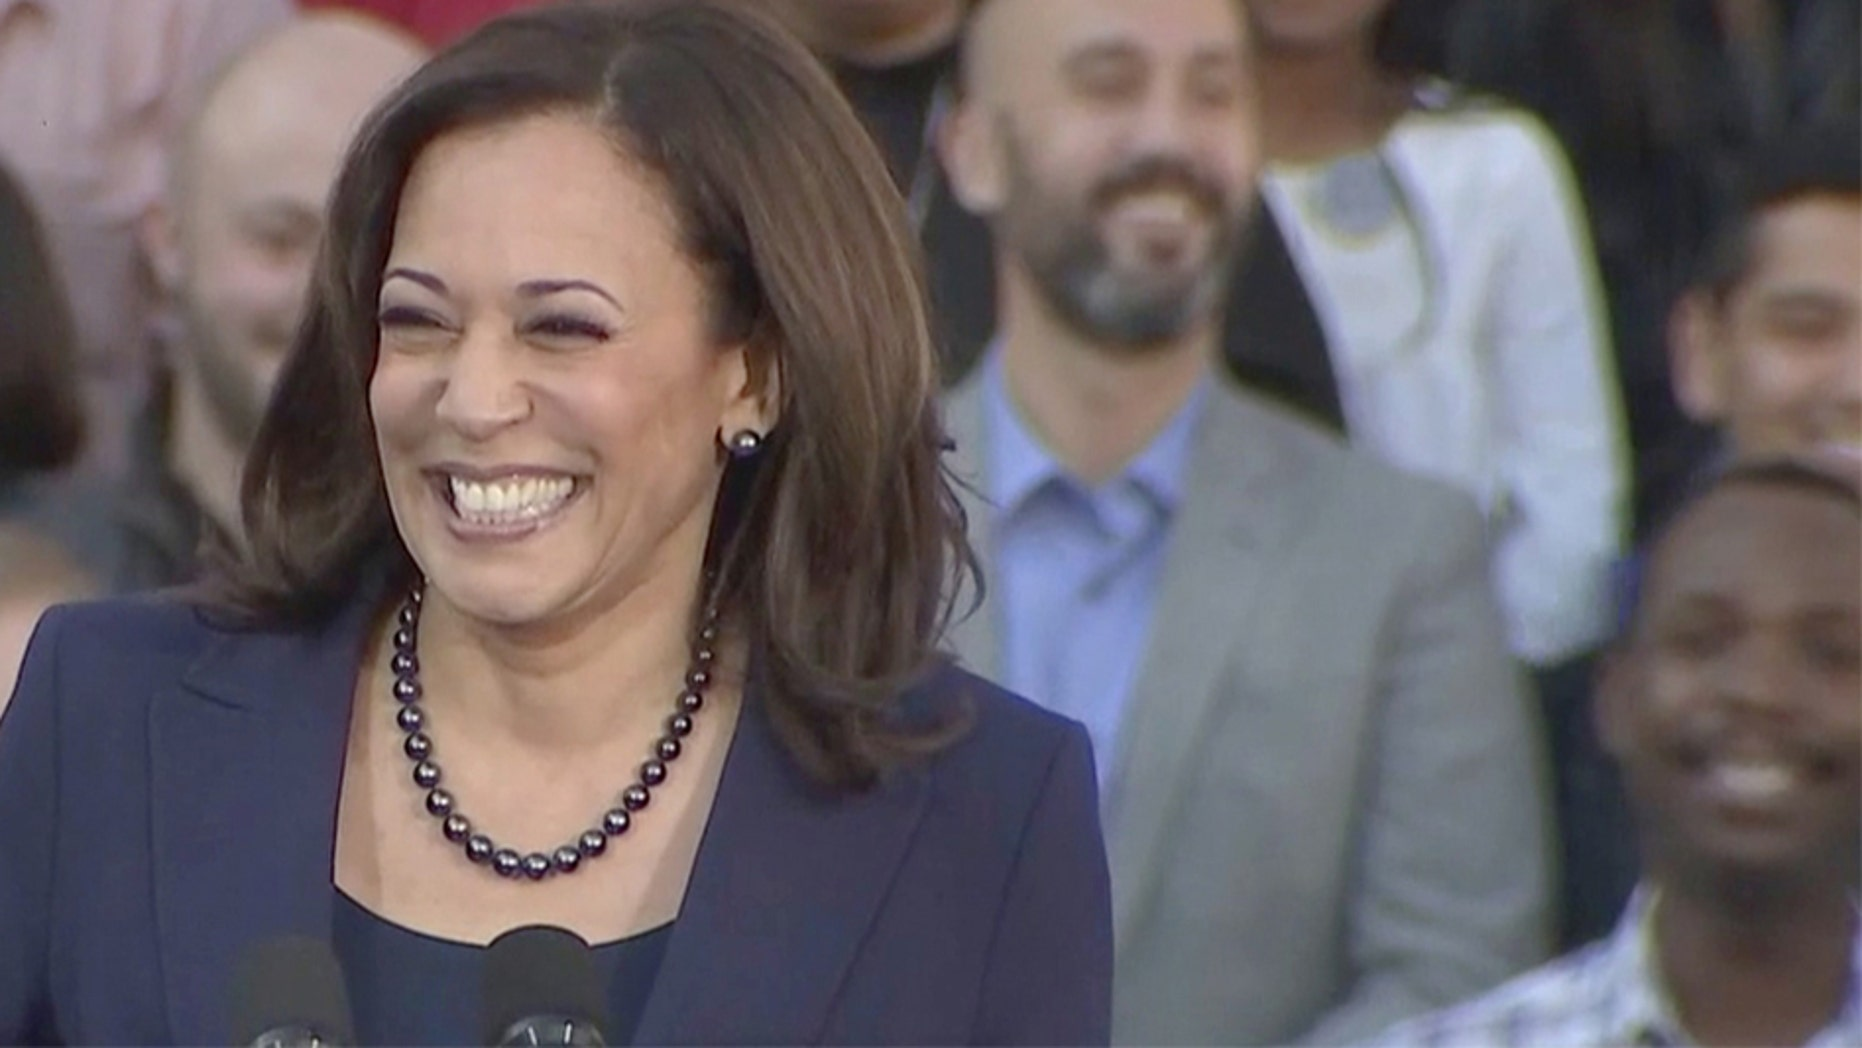 Harris kicks off presidential campaign by laying into Trump